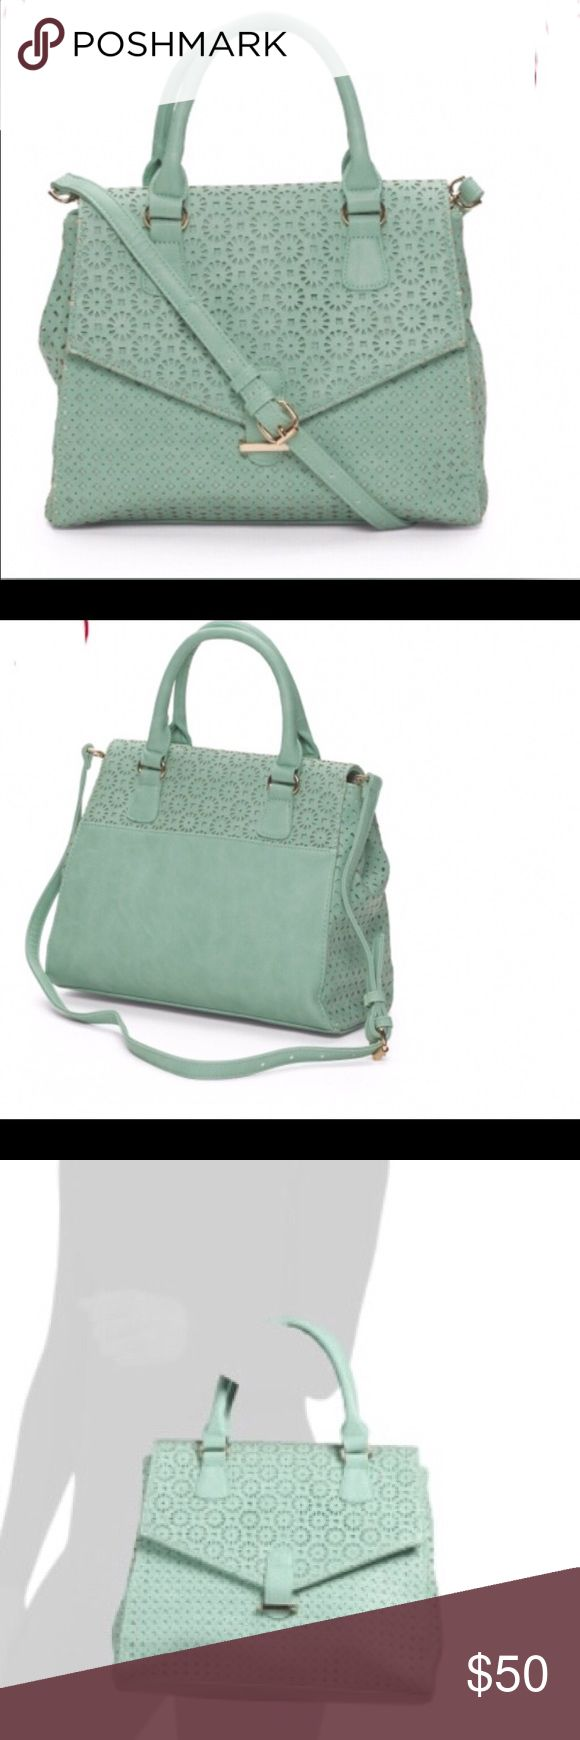 "Perforated satchel Nila  Anthony perforated satchel in mint.  Detatable/adjustable shoulder strap... Convertible style, expandable.....magnetic disc closure...3 interior pockets... Faux leather.....15.5"" W x 10.25"" H...NWT Nila Anthony Bags Satchels"